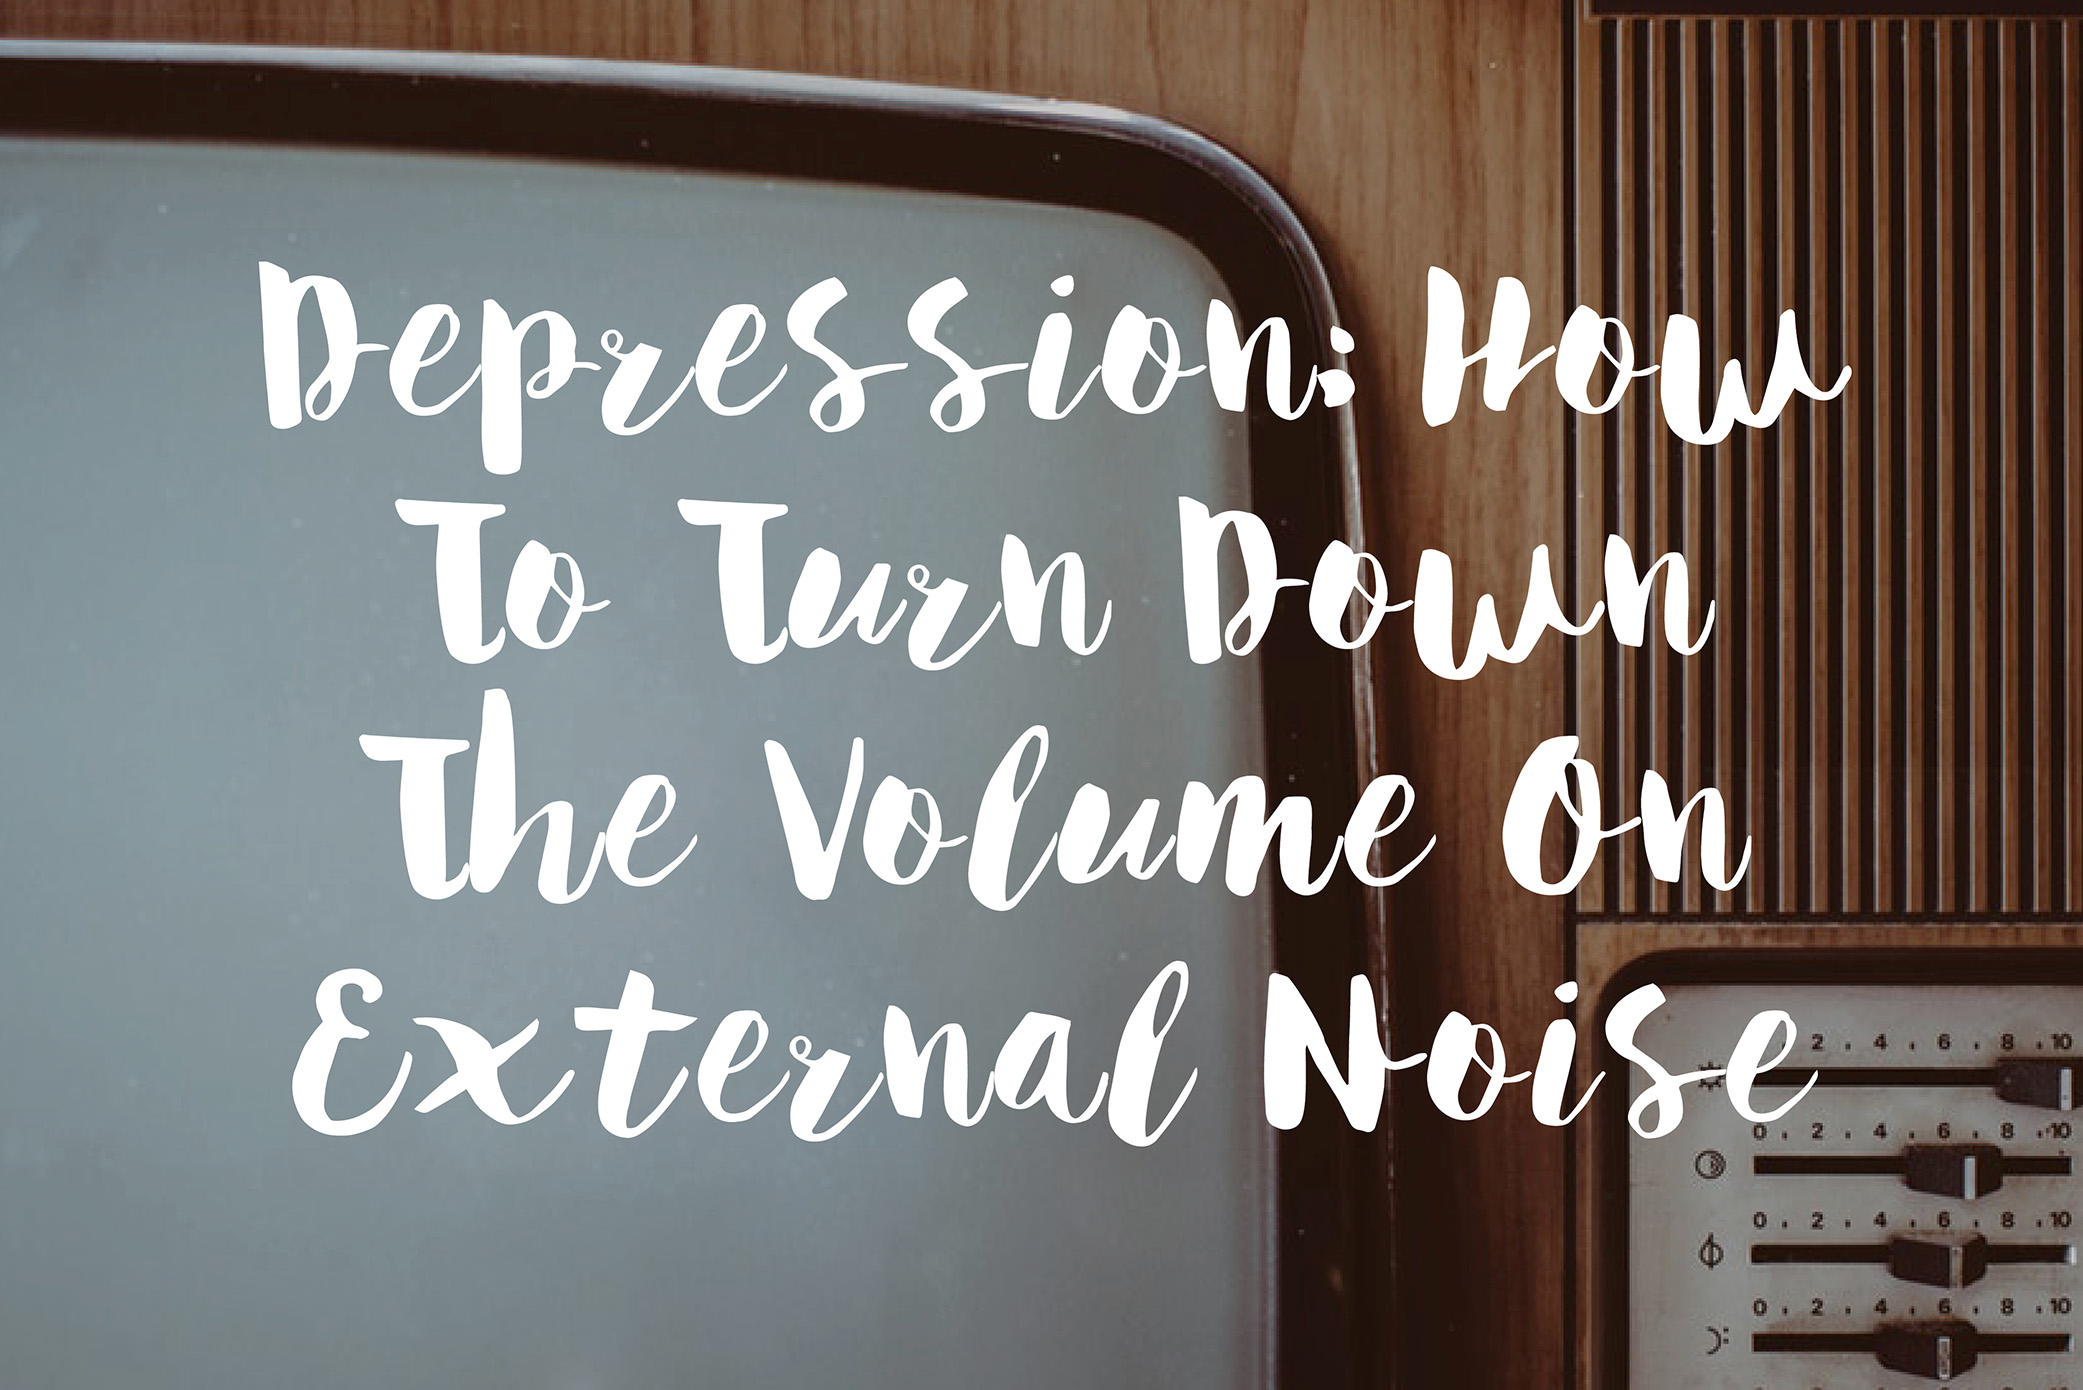 Depression: Turning Down The Volume On External Noise